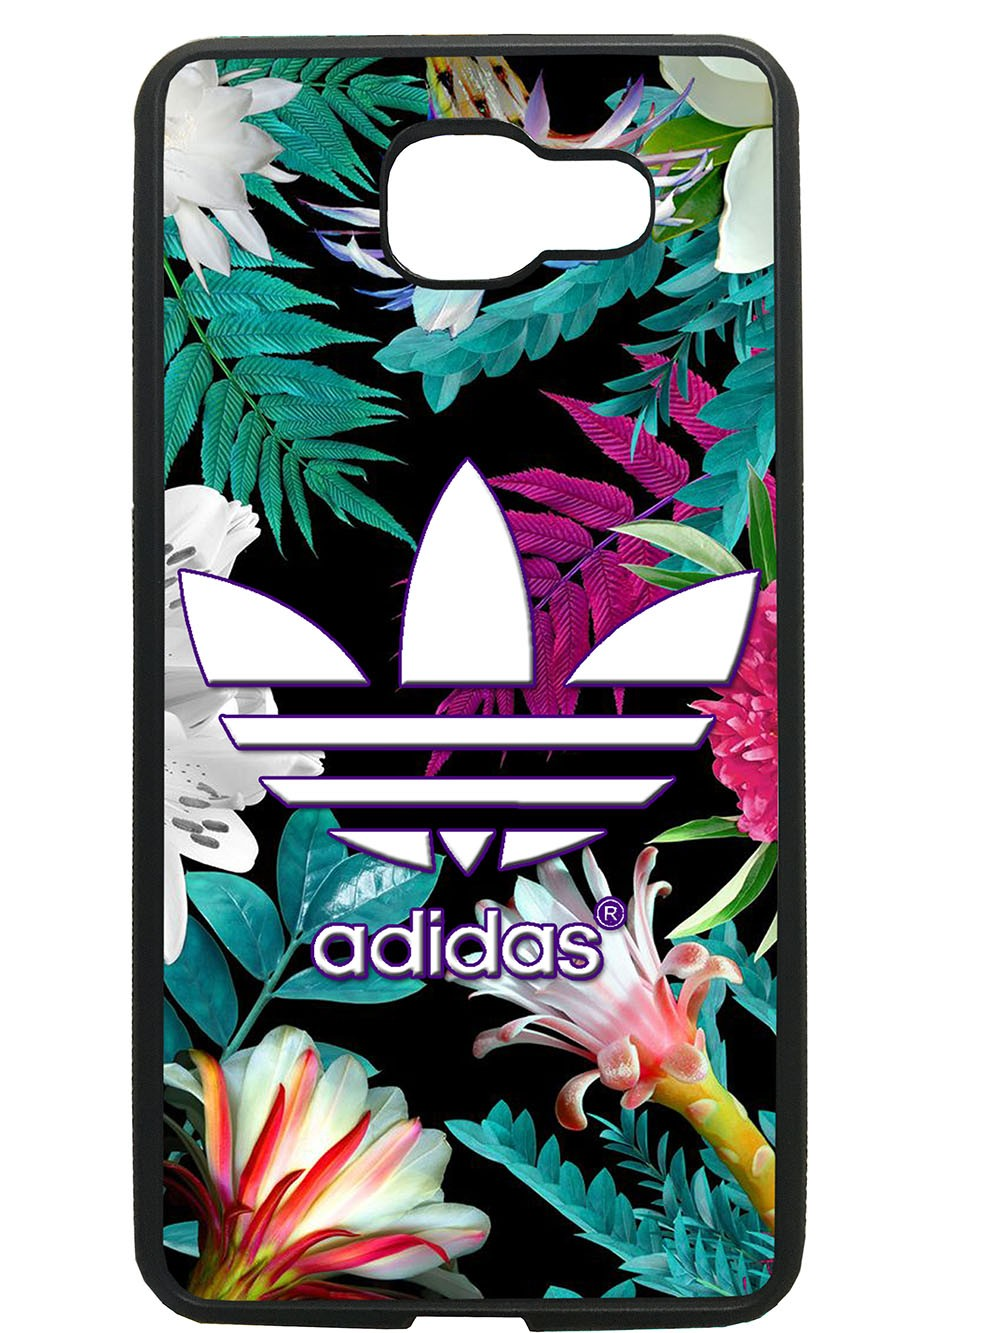 Funda carcasas móvil adidas flores compatible con movil Samsung Galaxy A3 2016